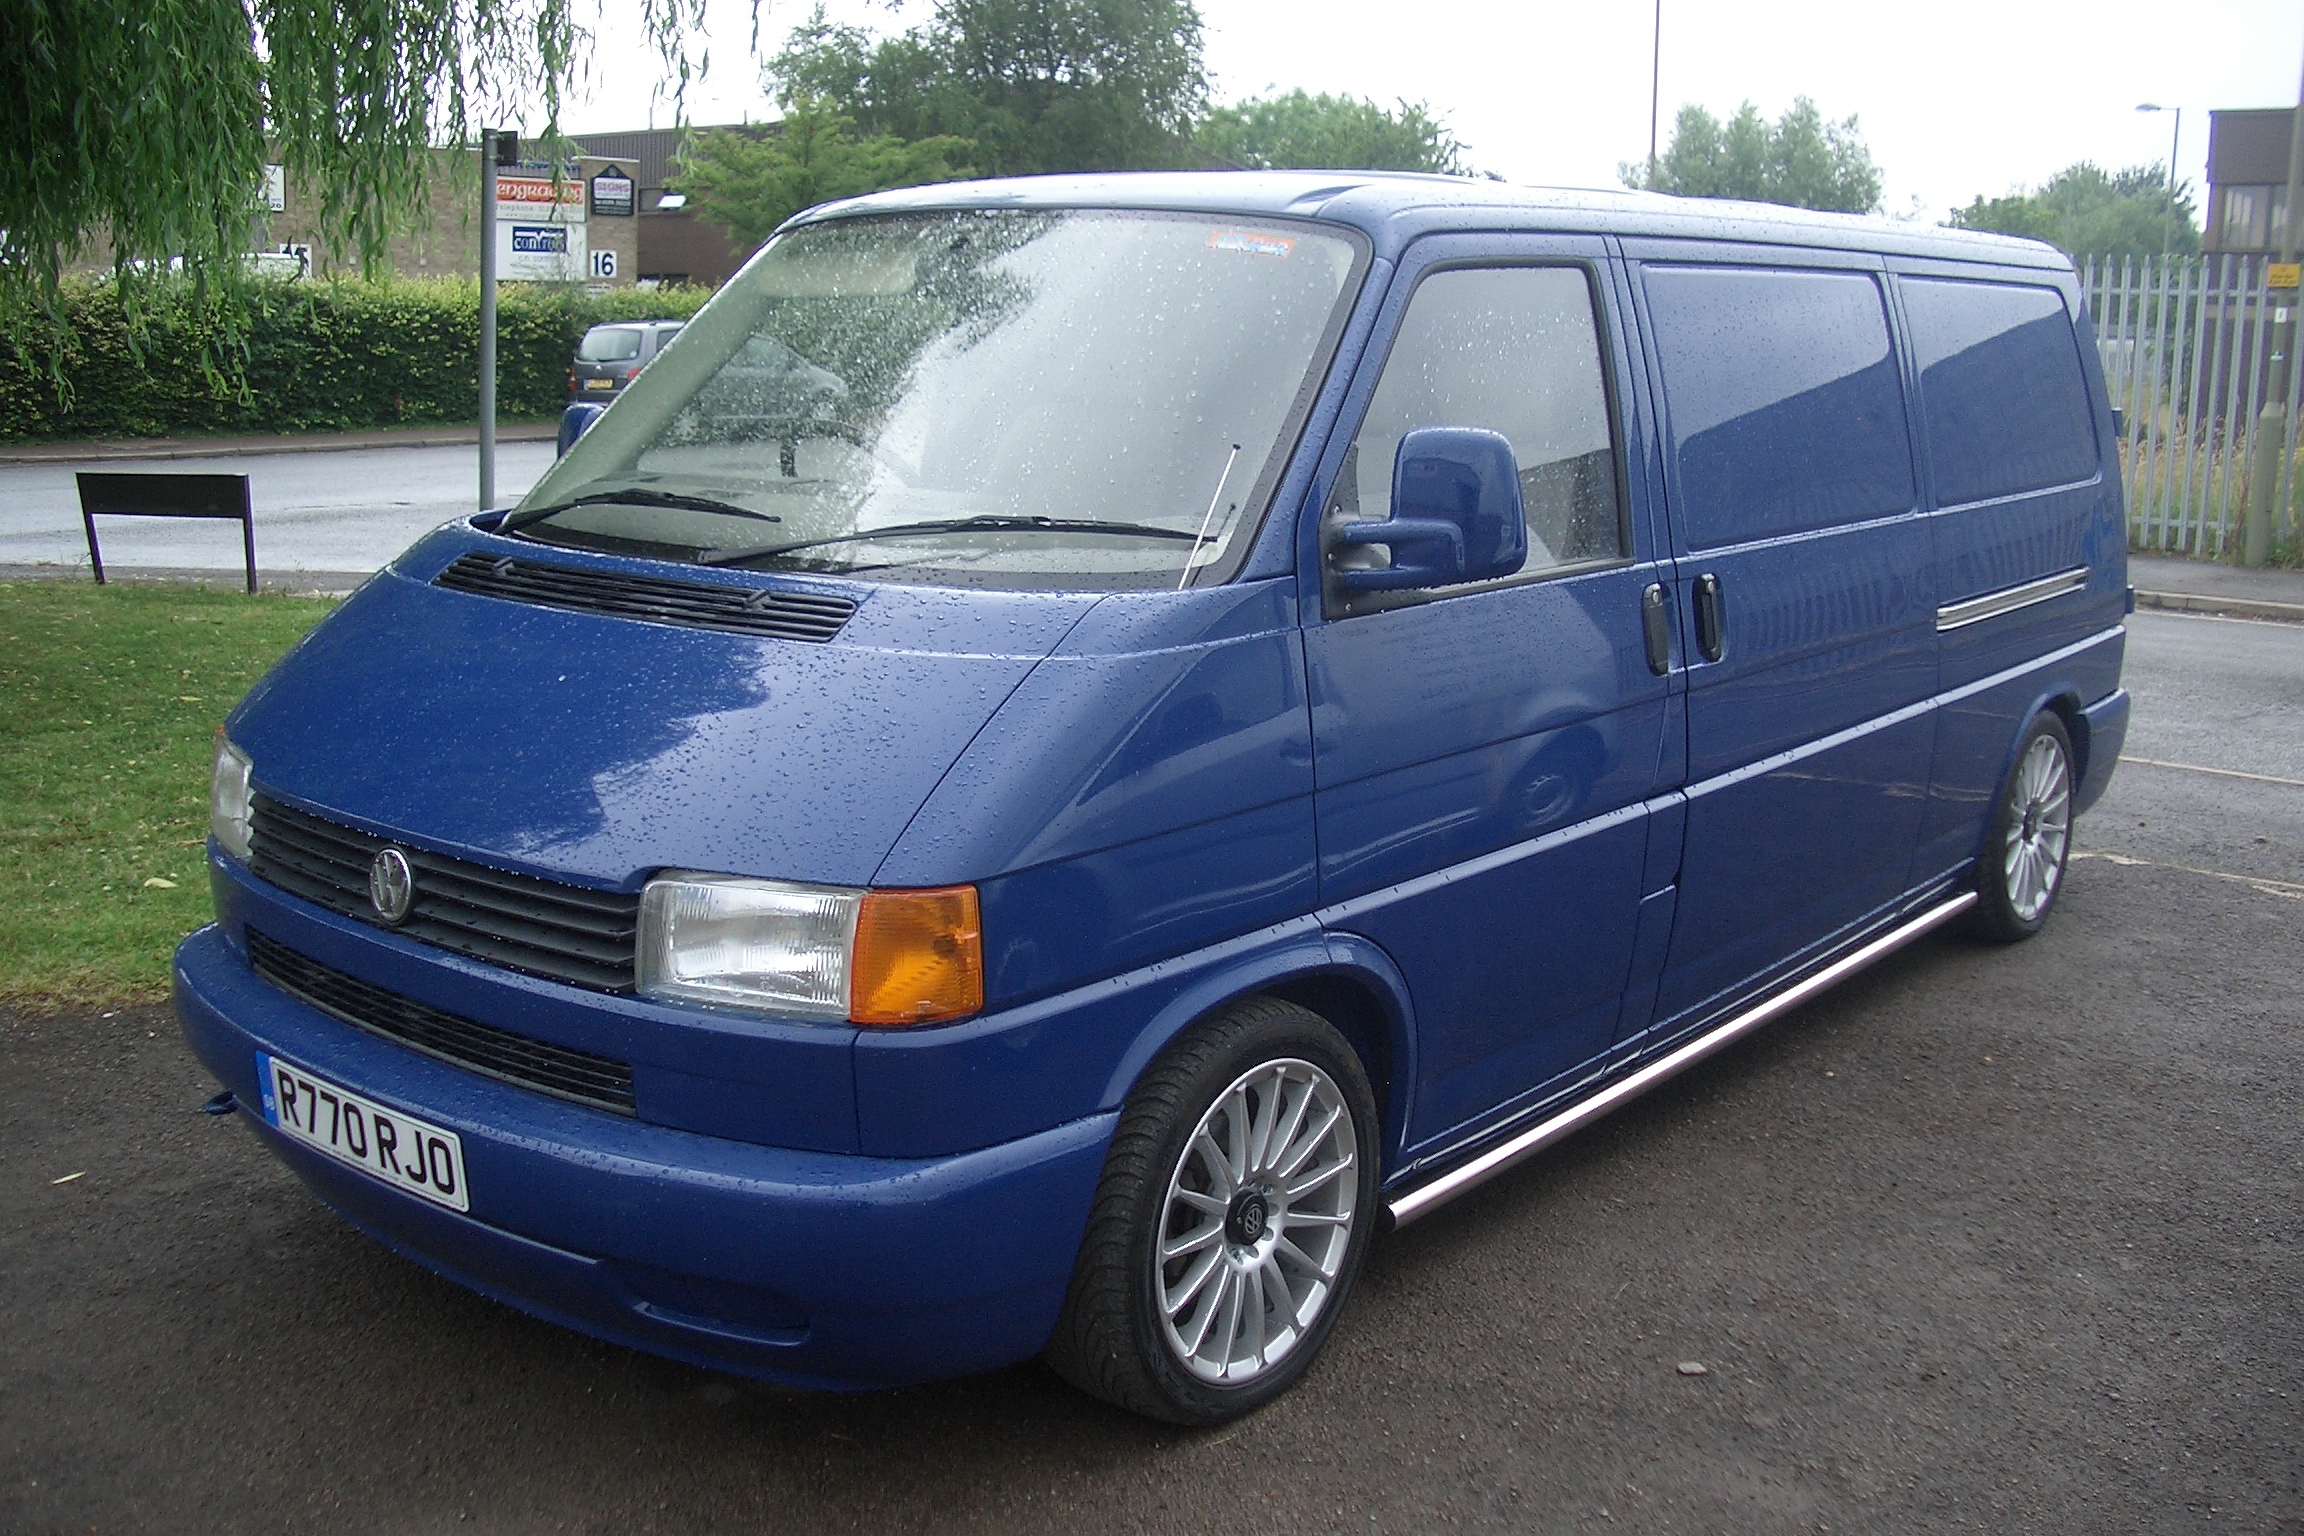 1990 volkswagen caravelle i t4 pictures information. Black Bedroom Furniture Sets. Home Design Ideas